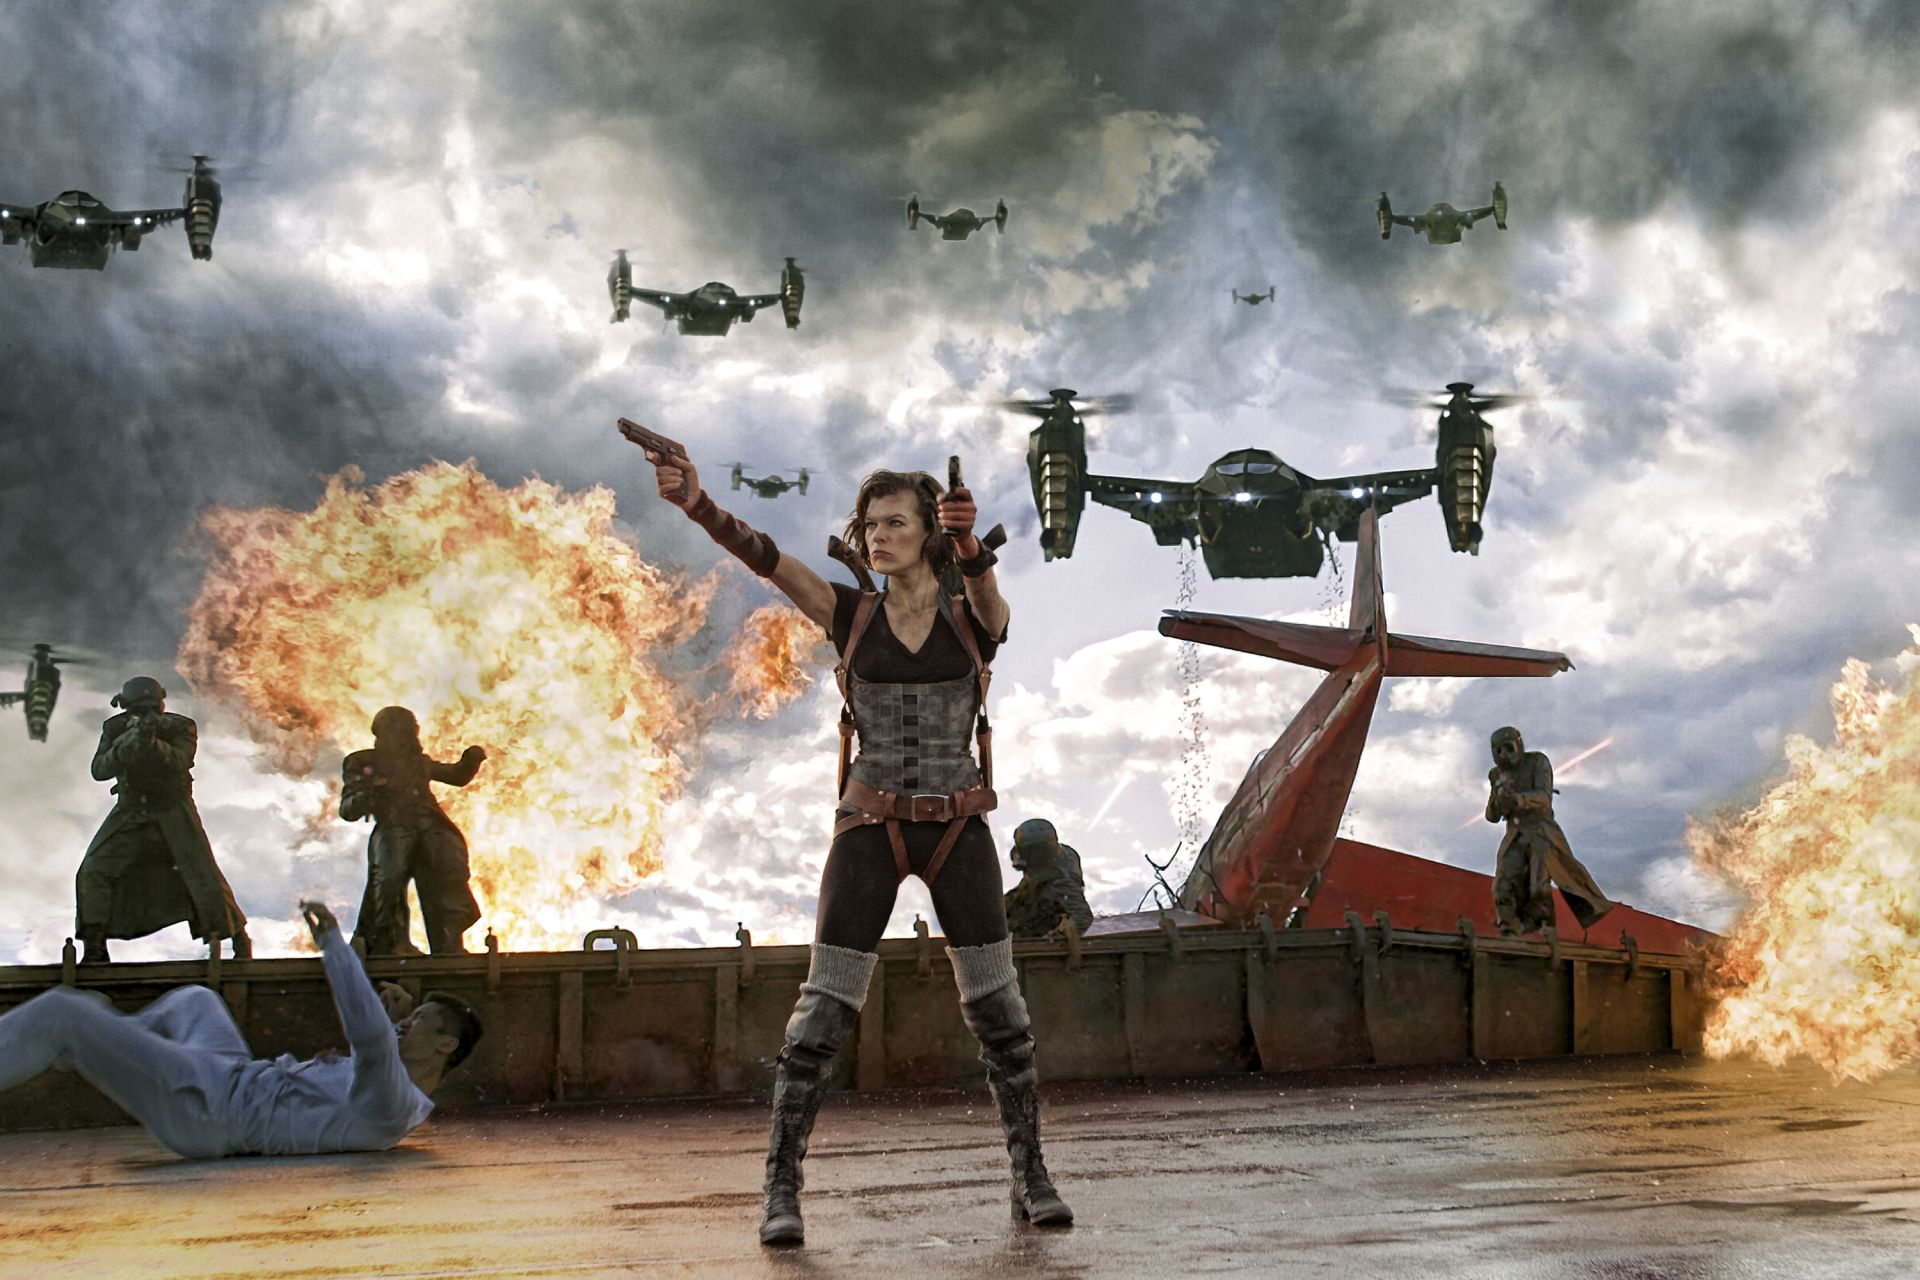 Resident Evil action movie still